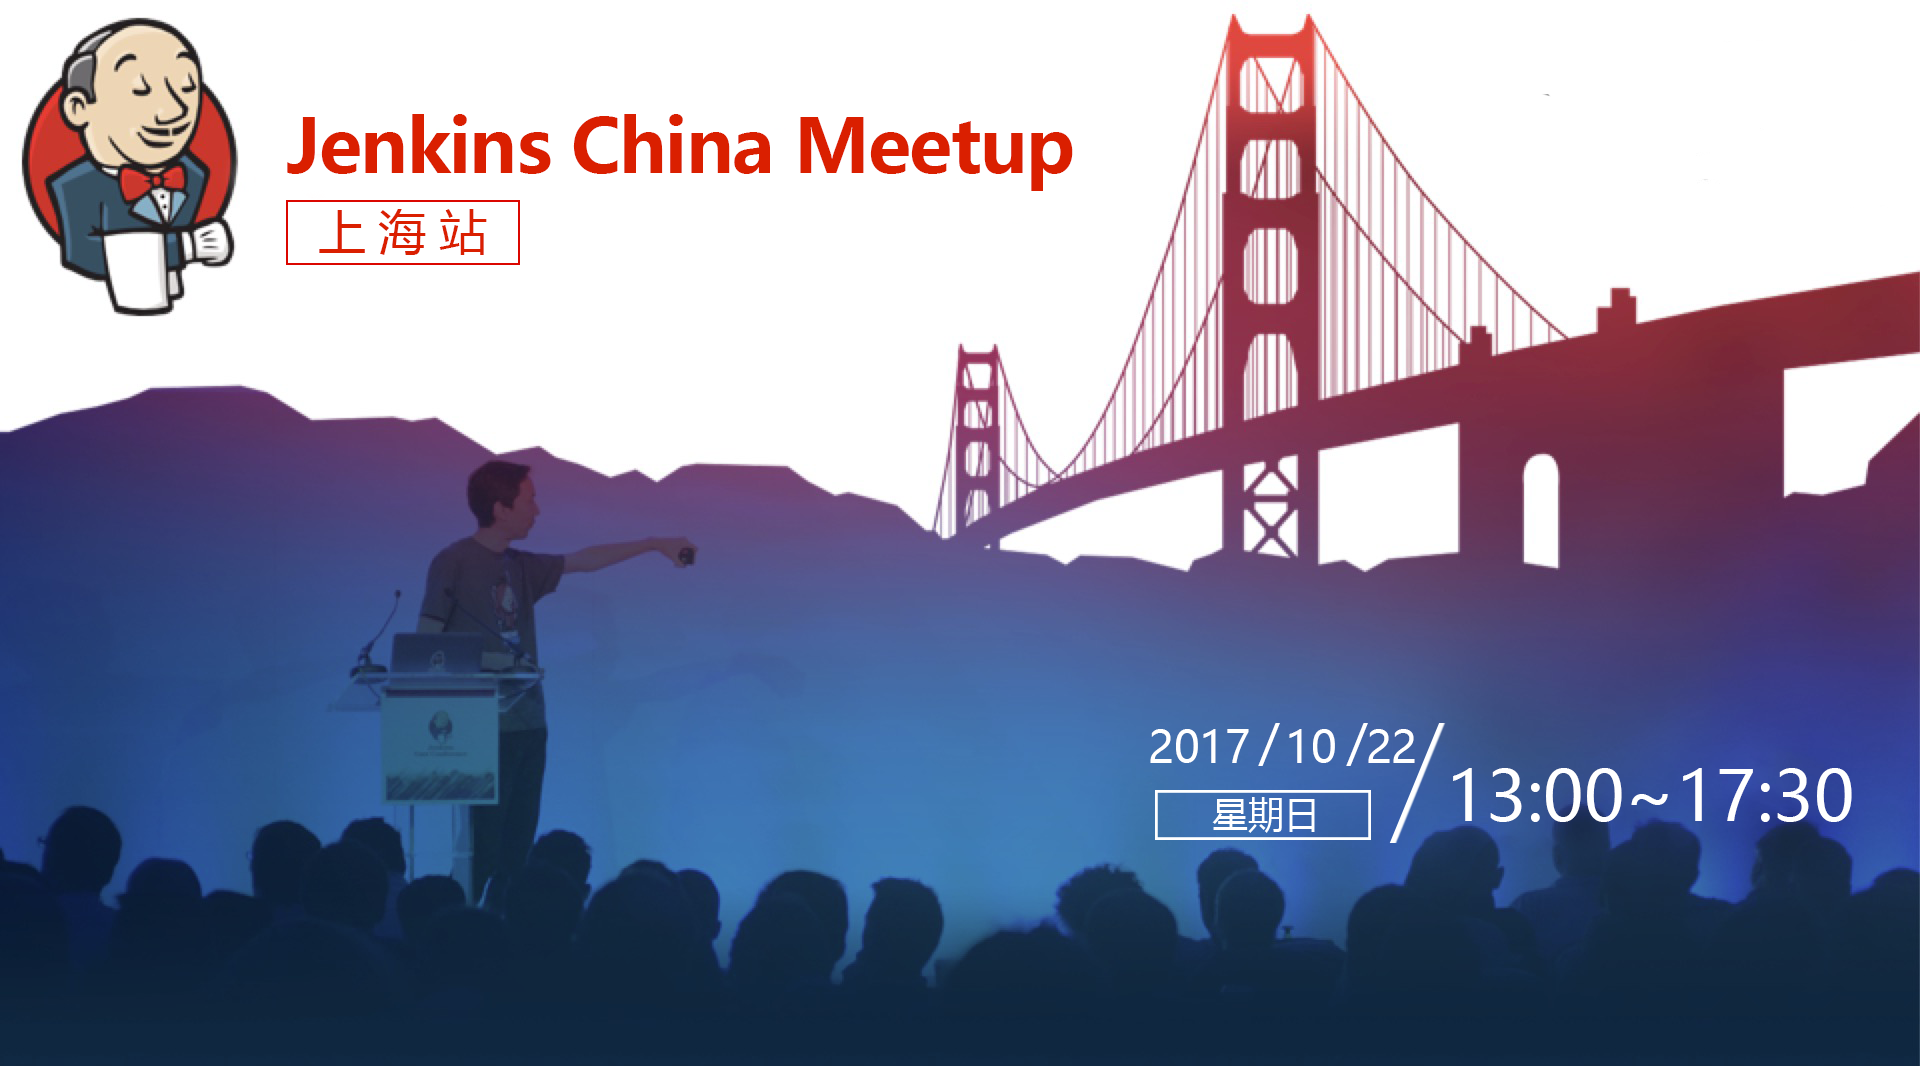 Jenkins China Meetup 上海站(1022 周日)